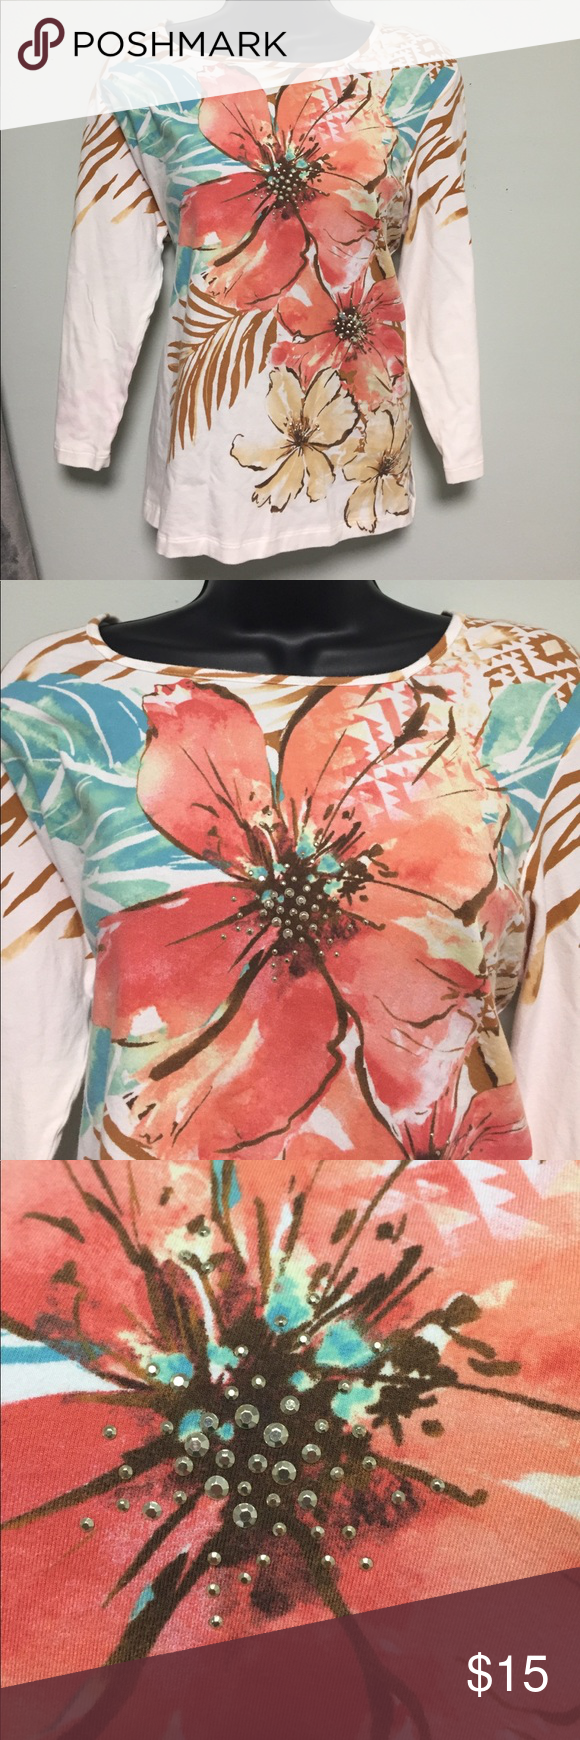 Amazing top shirt Alfred Dunner Gorgeous ivory shirt with floral and animal Print. In perfect condition Alfred Dunner Tops